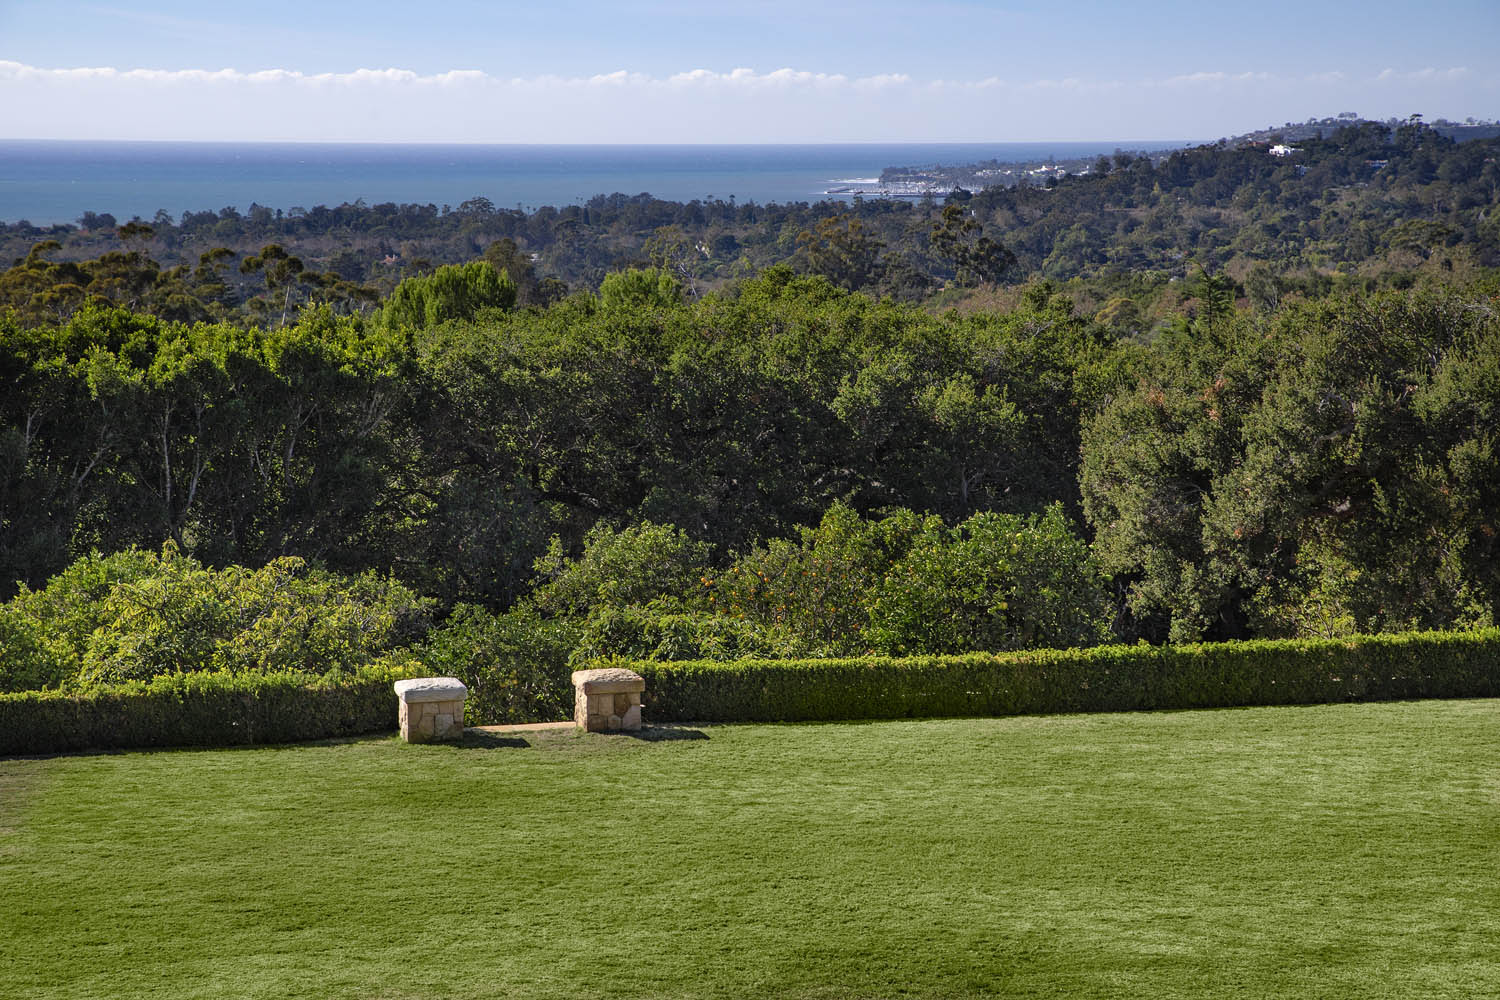 Property for Sale: Park Lane, Montecito, CA 93108 List Price: $28,000,000 7 Beds 7 Baths 3 Half Baths 15,181 Sq Ft Prestigious Park Lane!